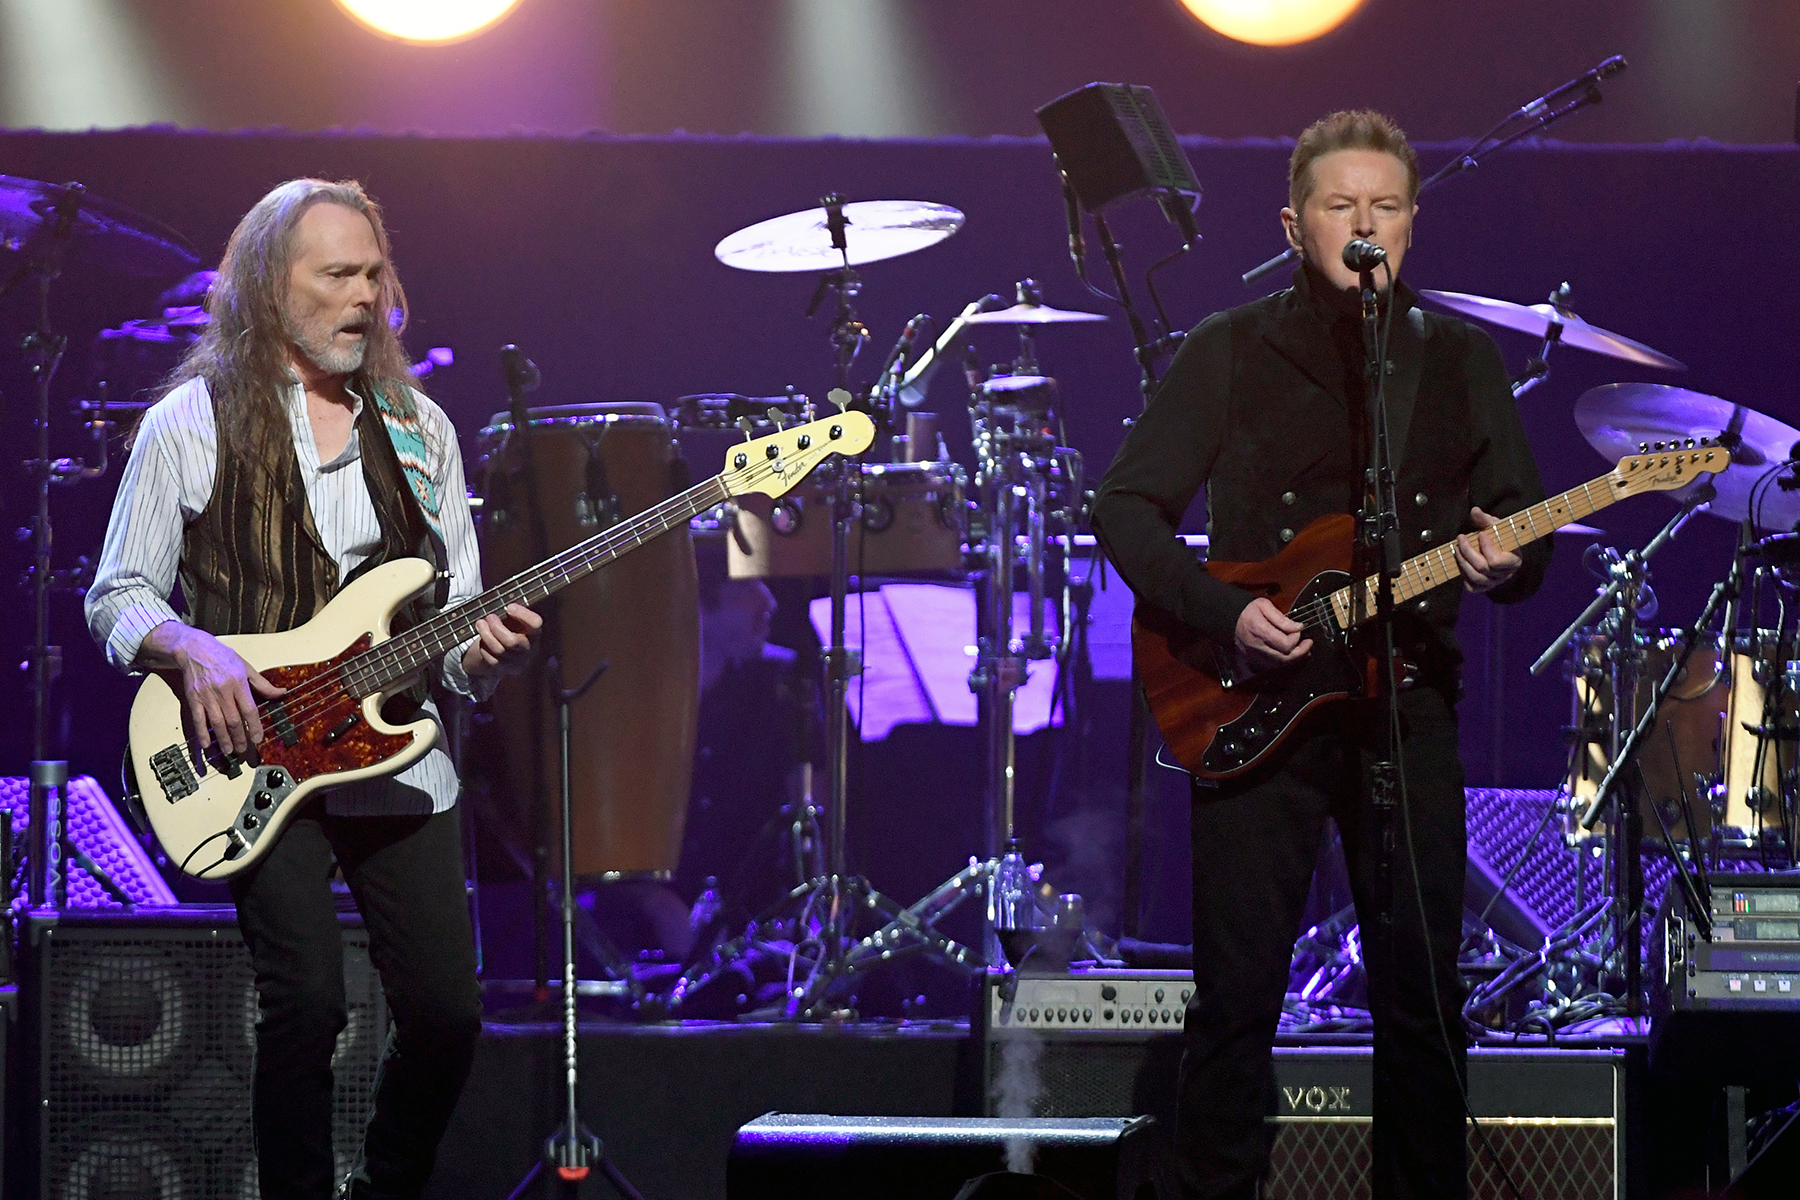 LAS VEGAS, NEVADA - SEPTEMBER 27:  Timothy B. Schmit (L) and Don Henley of the Eagles perform at MGM Grand Garden Arena on September 27, 2019 in Las Vegas, Nevada.  (Photo by Ethan Miller/Getty Images)